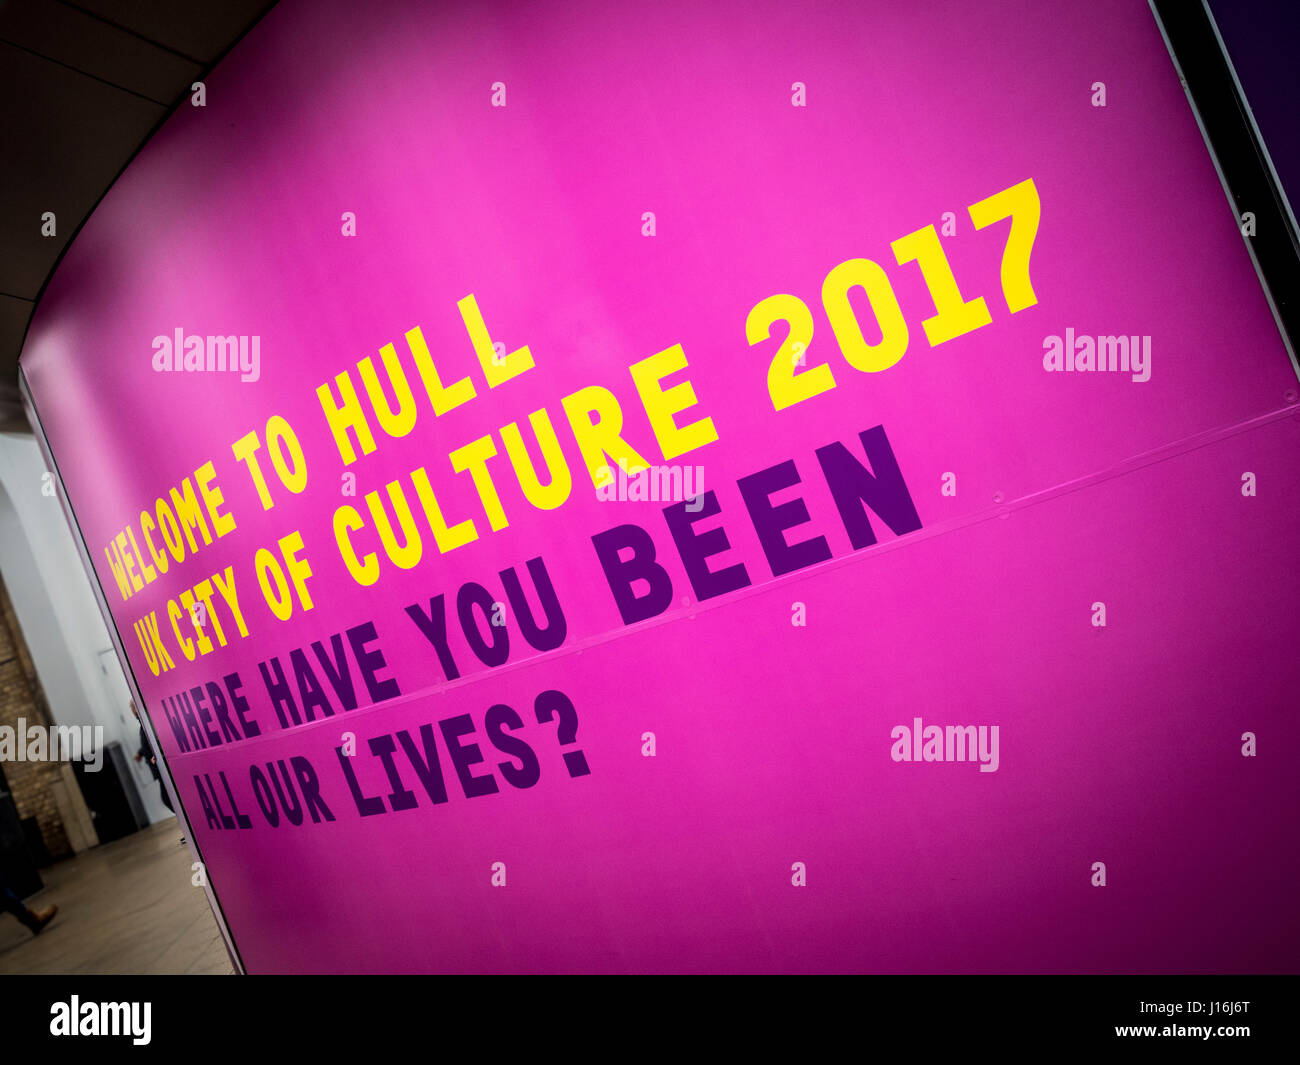 Welcome to Hull sign, UK City of Culture 2017. - Stock Image